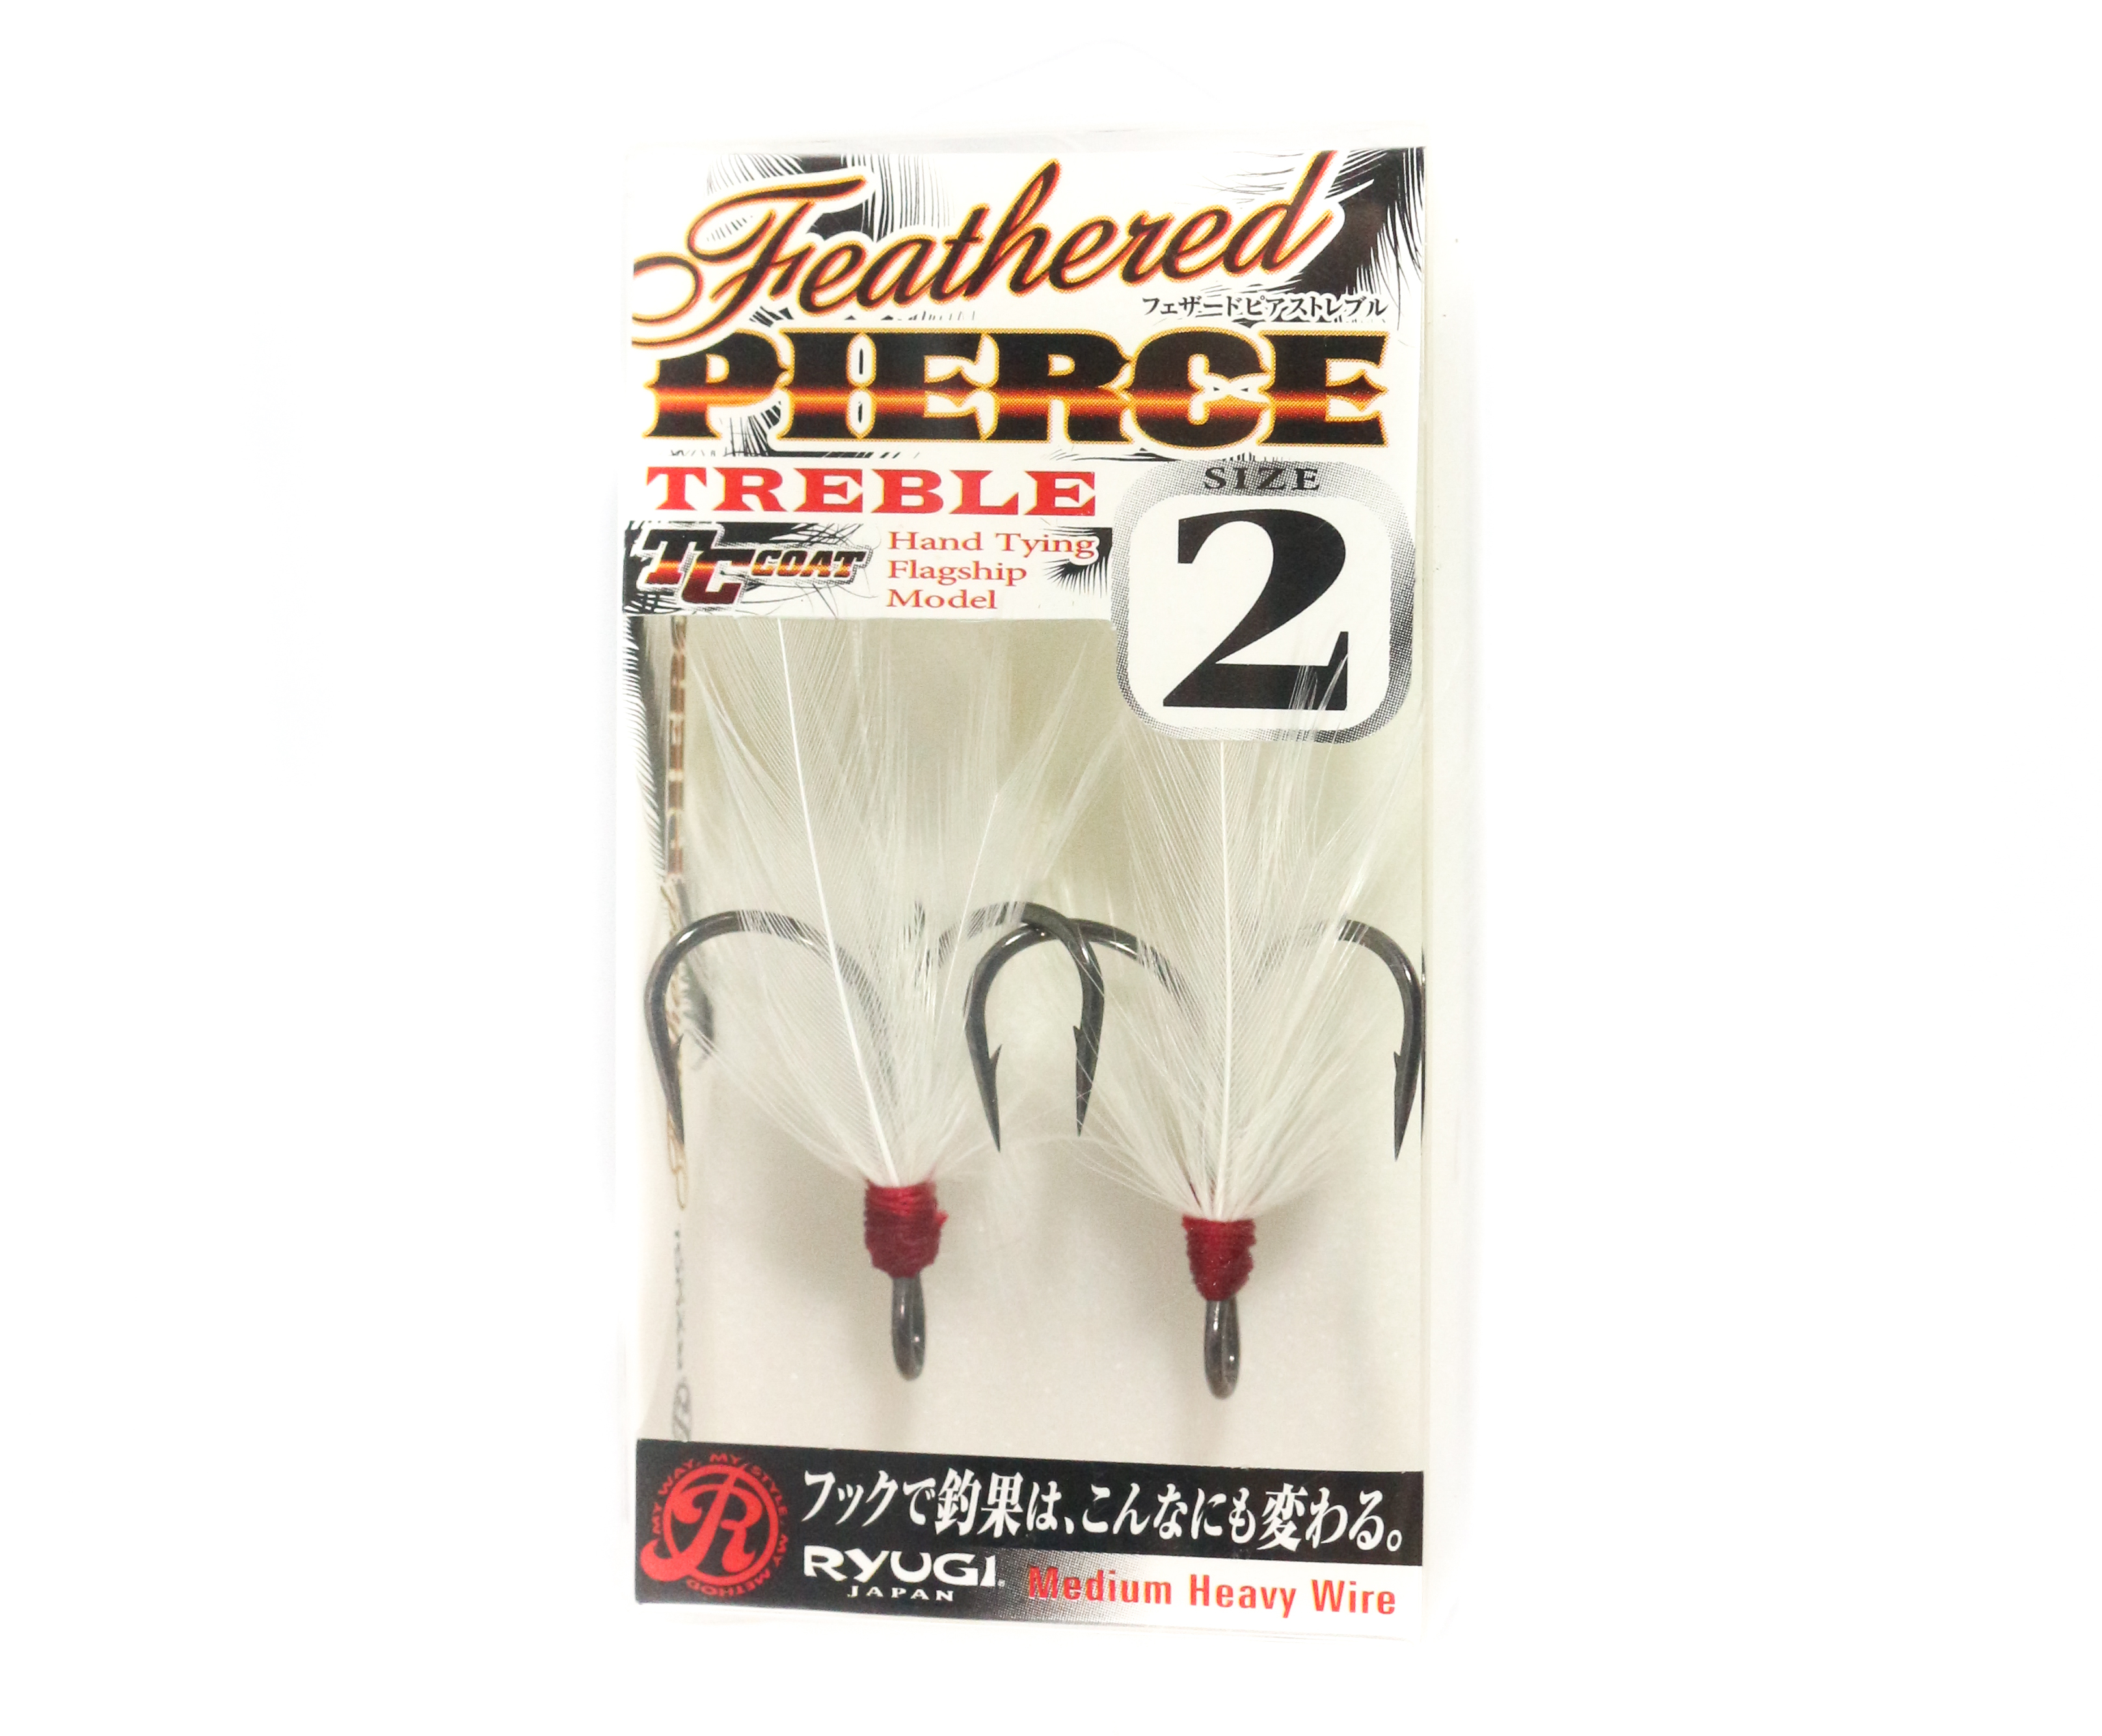 Ryugi HFP046 Treble Hooks Feathered Pierce Size 2 (2304)